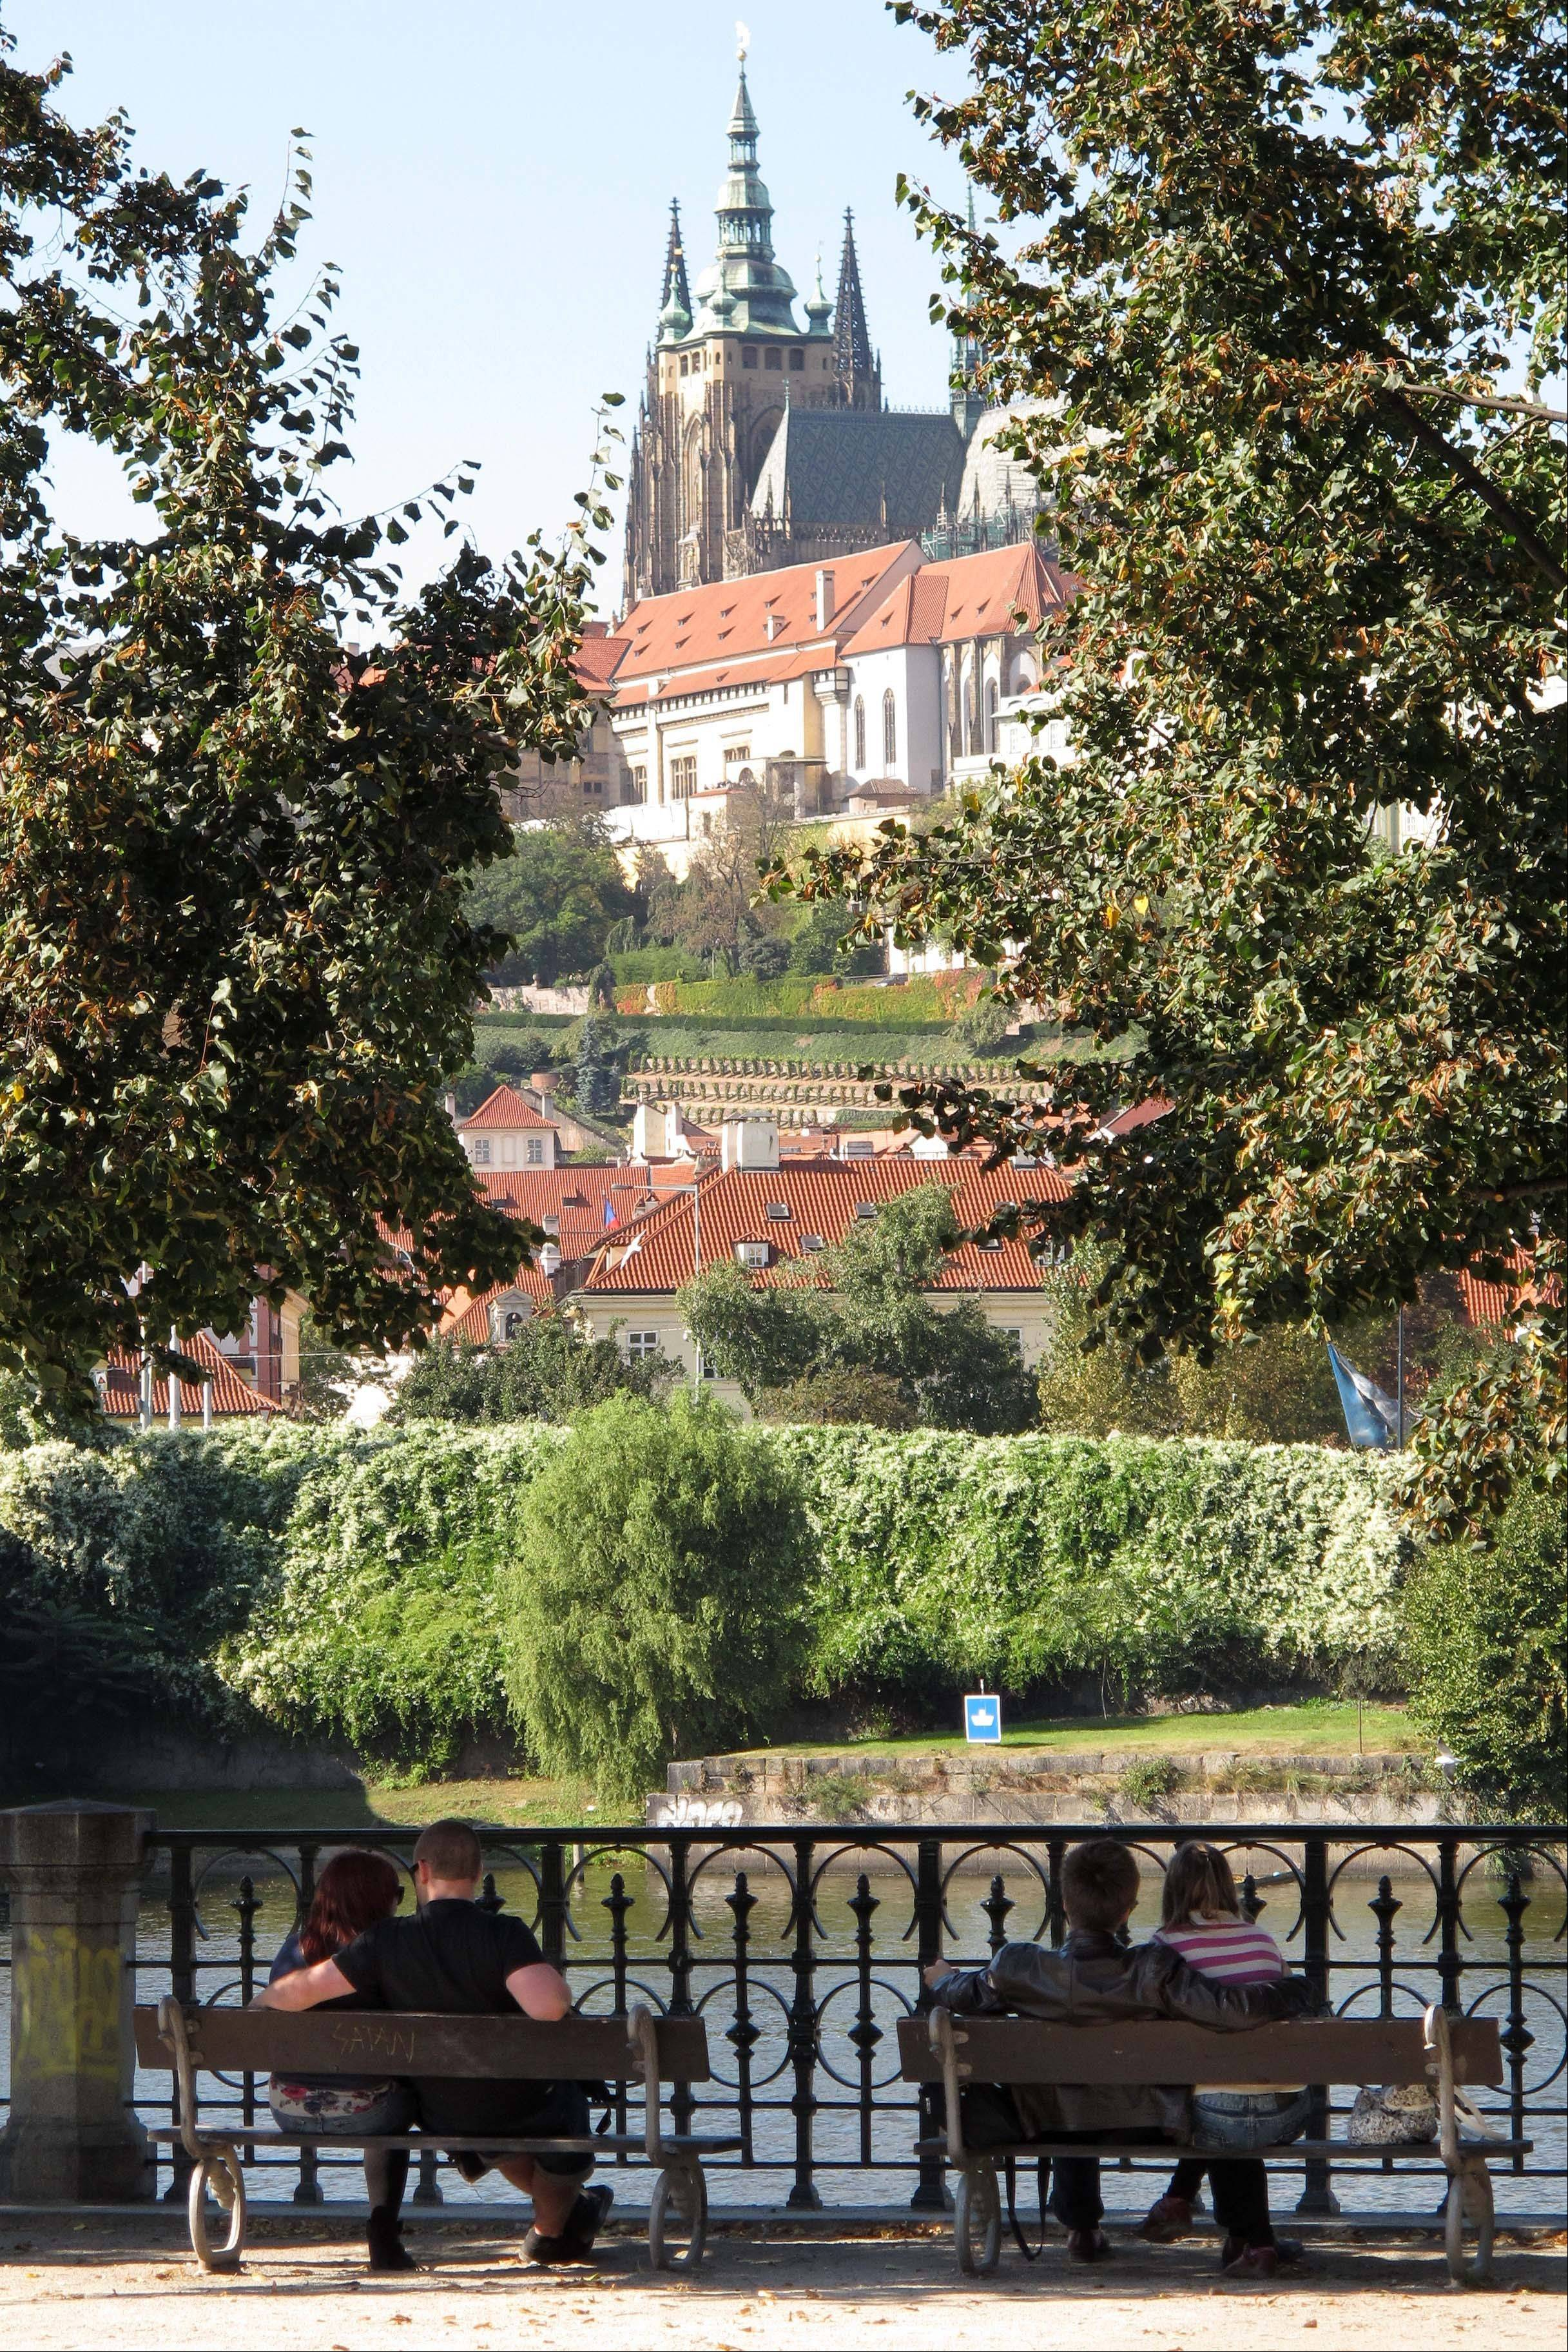 Two couples sit on the bank of the Vltava River with a medieval castle in the background in Prague.